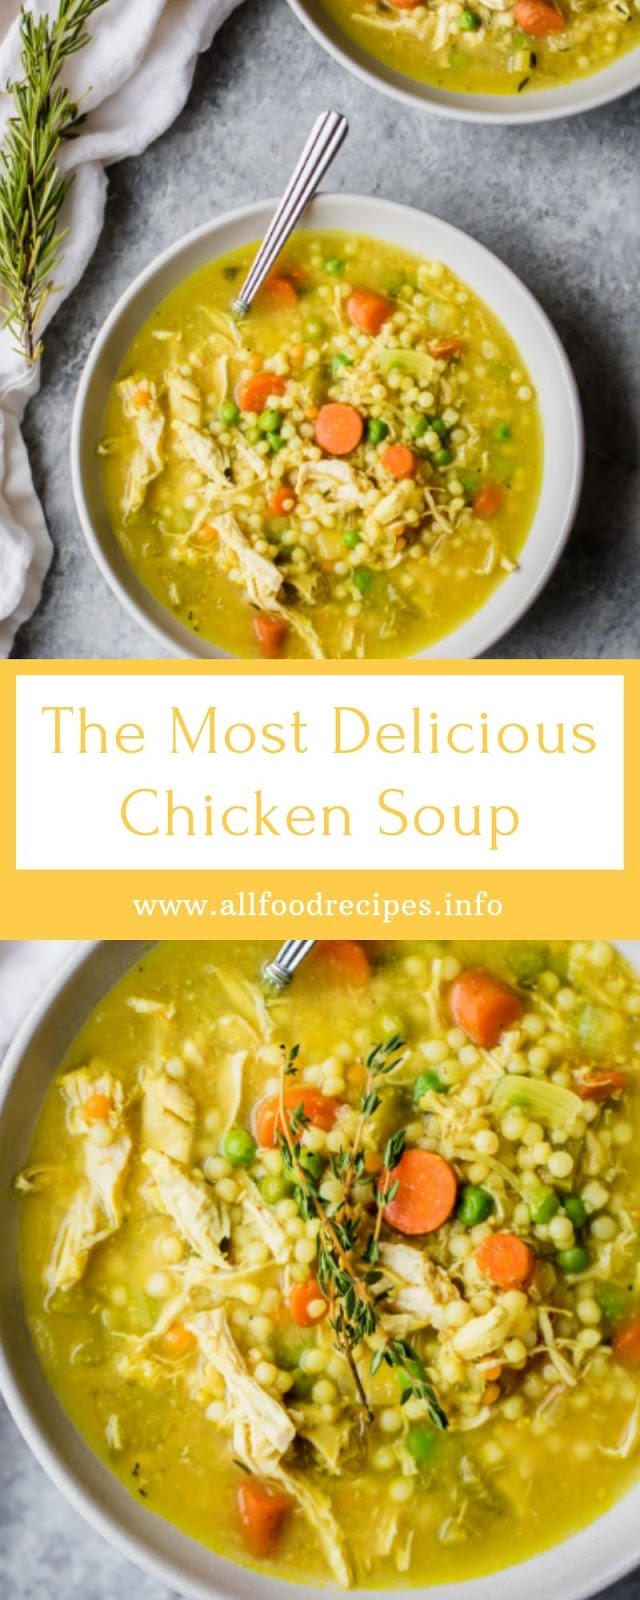 The Most Delicious Chicken Soup